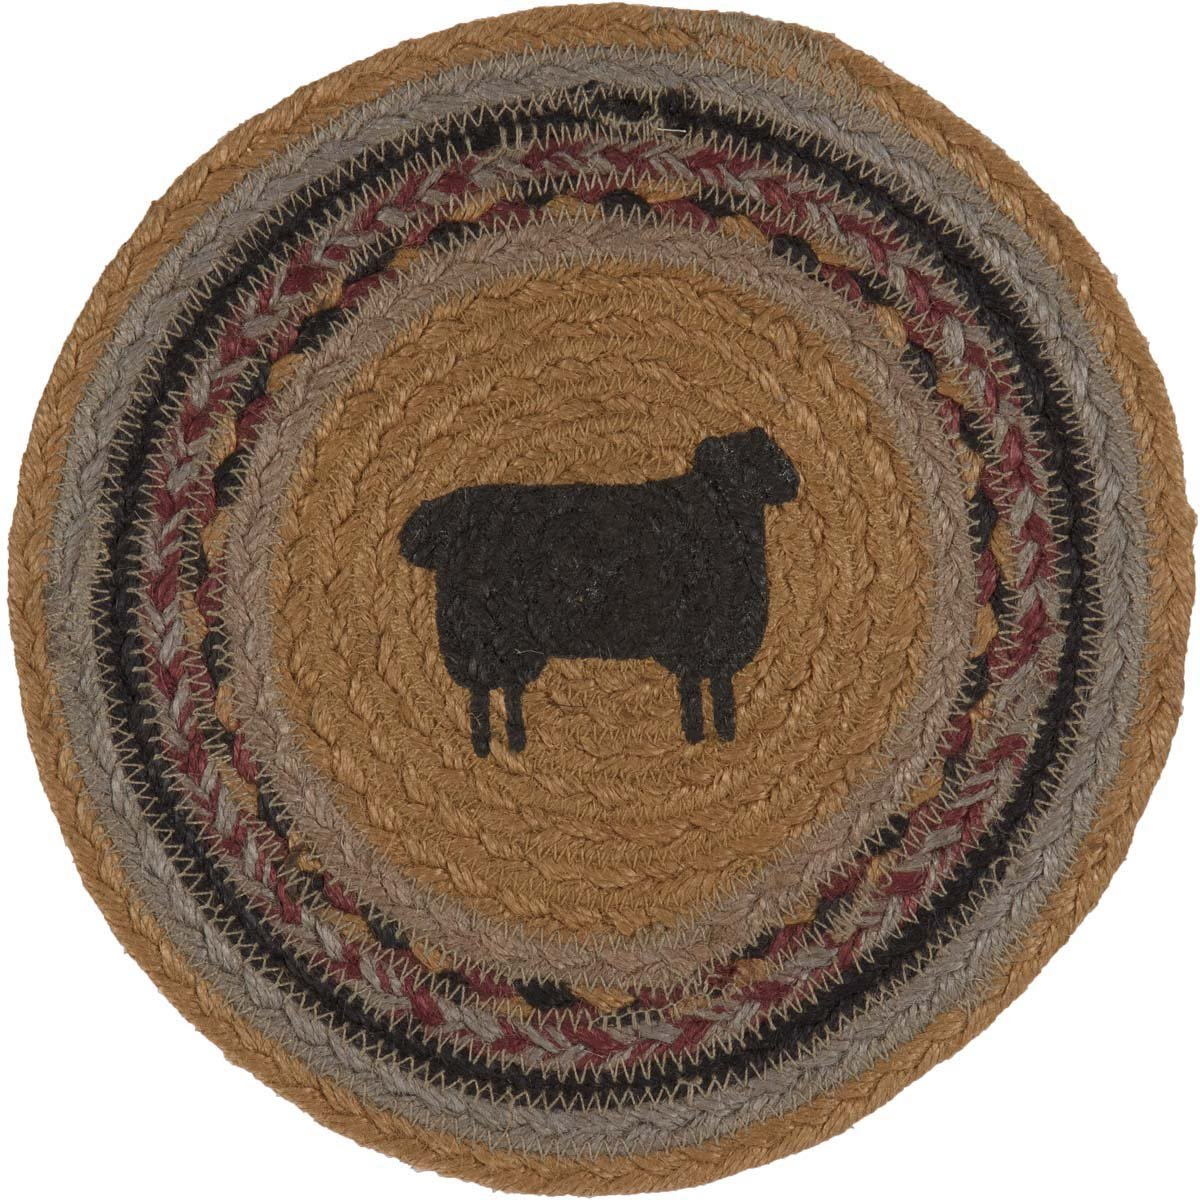 Heritage Farms Sheep Jute Trivet.